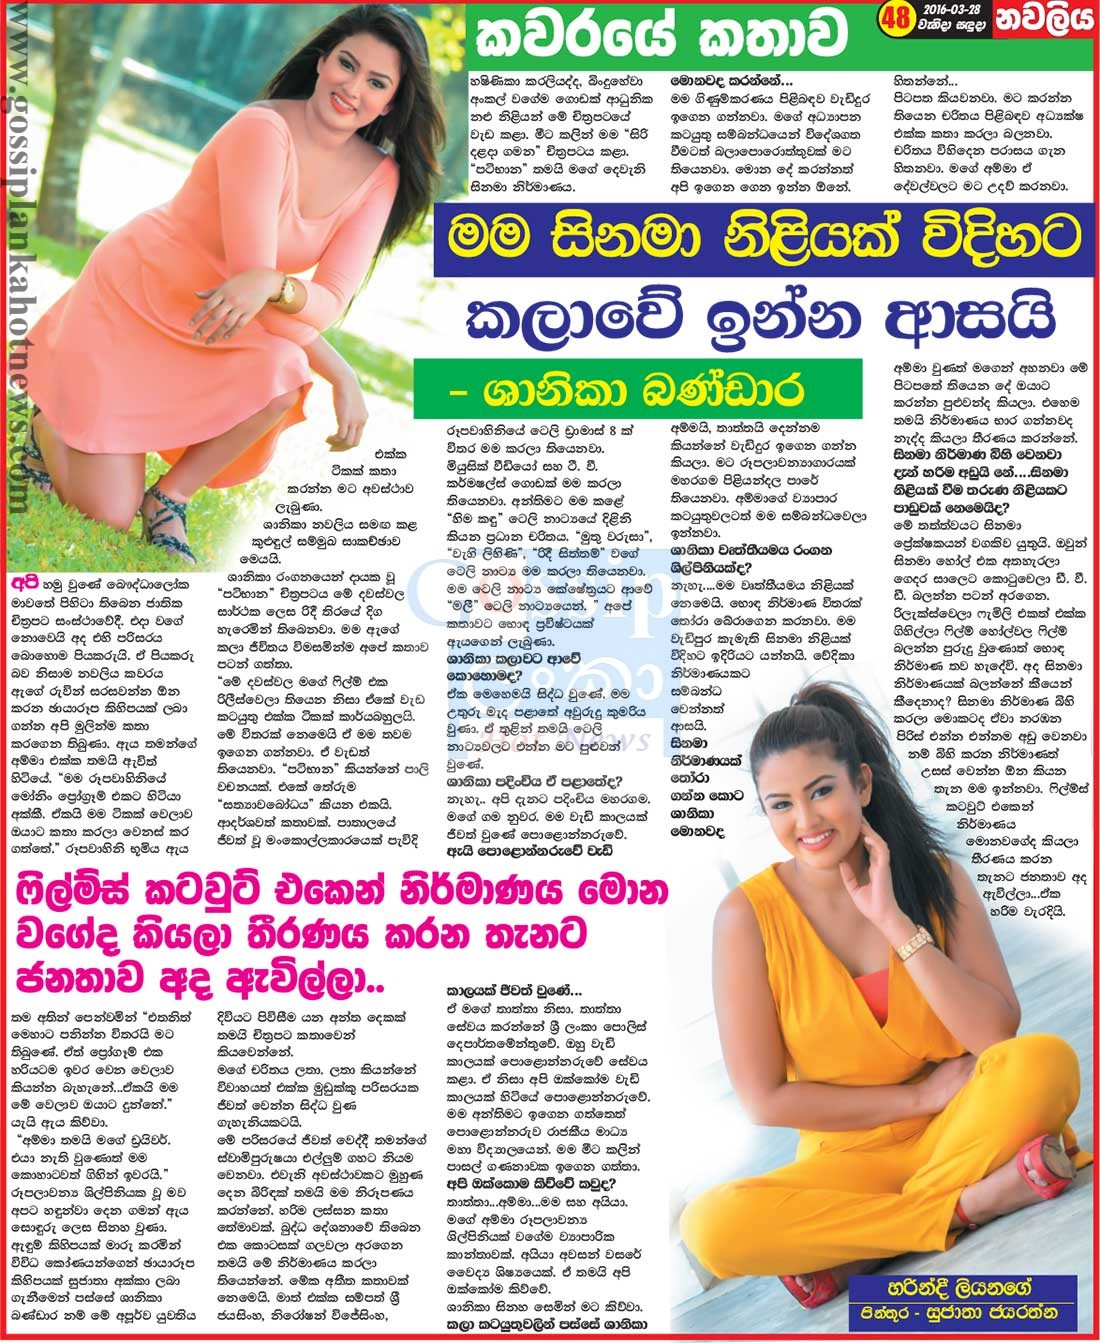 Gossip Chat with Shanika Bandara